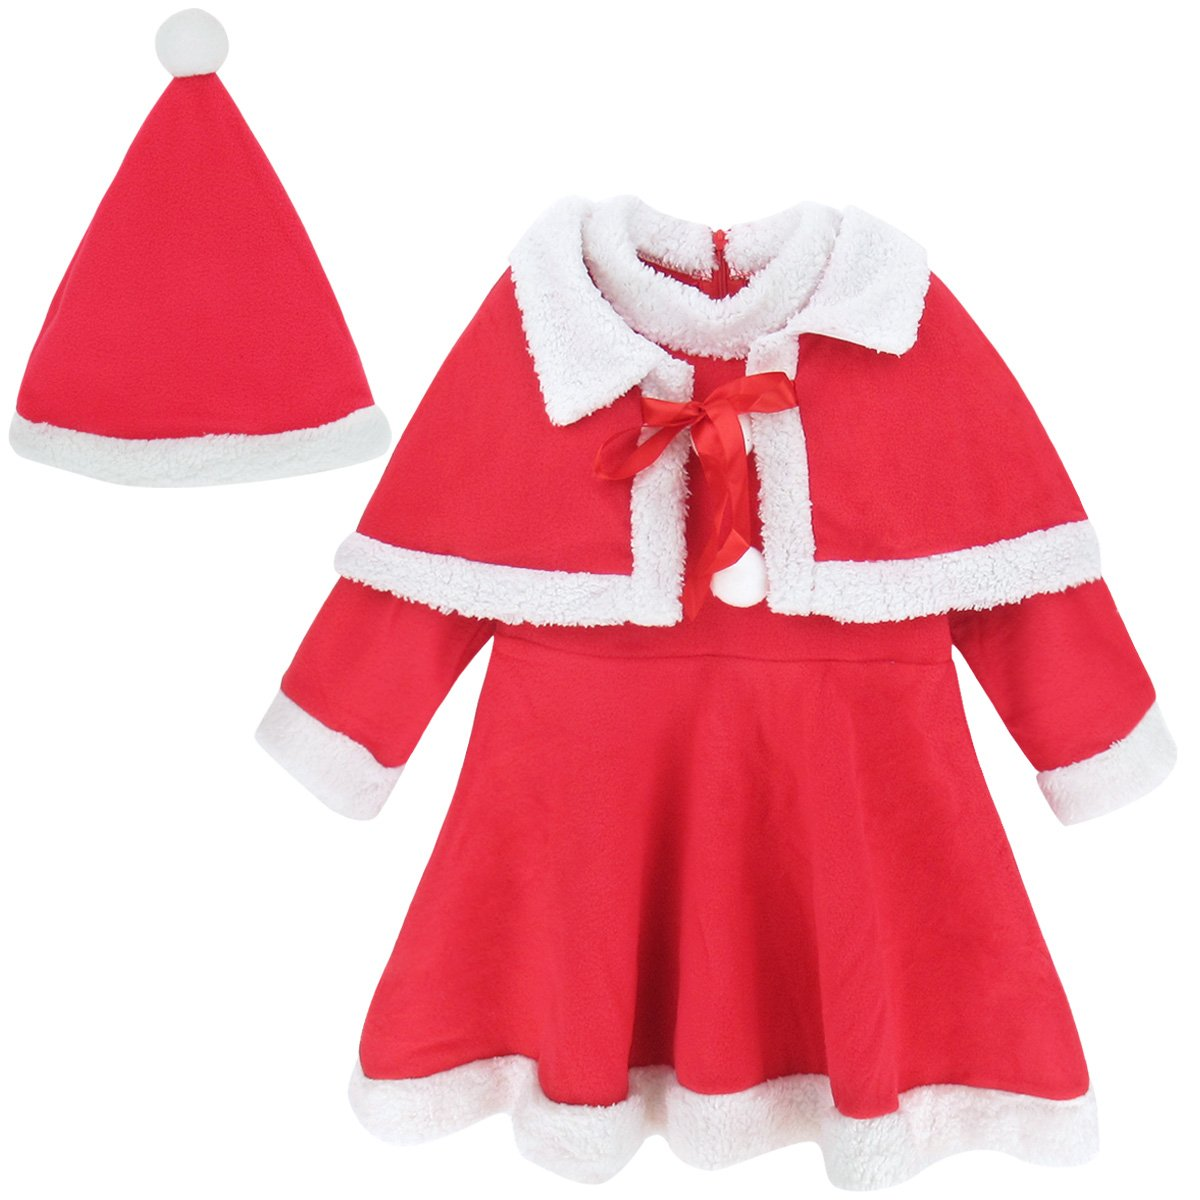 A&J Design Baby Girls' Toddler Christmas Outfit Dress with Shawl and Hat (12-18 Months, Red)